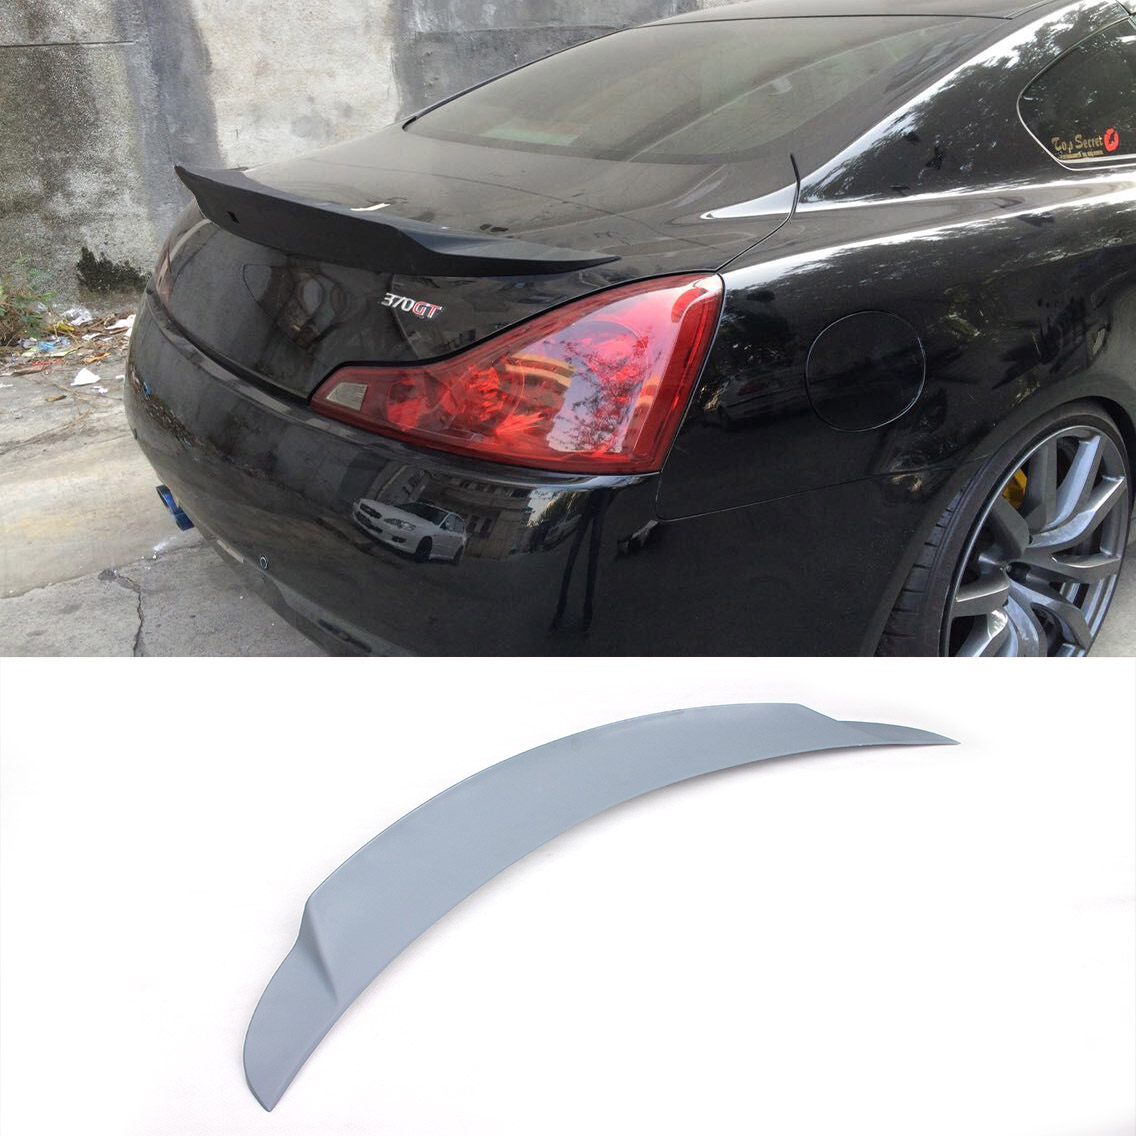 Frp g37 jc styling auto rear trunk wing for infiniti car for Wing motors automobiles miami fl